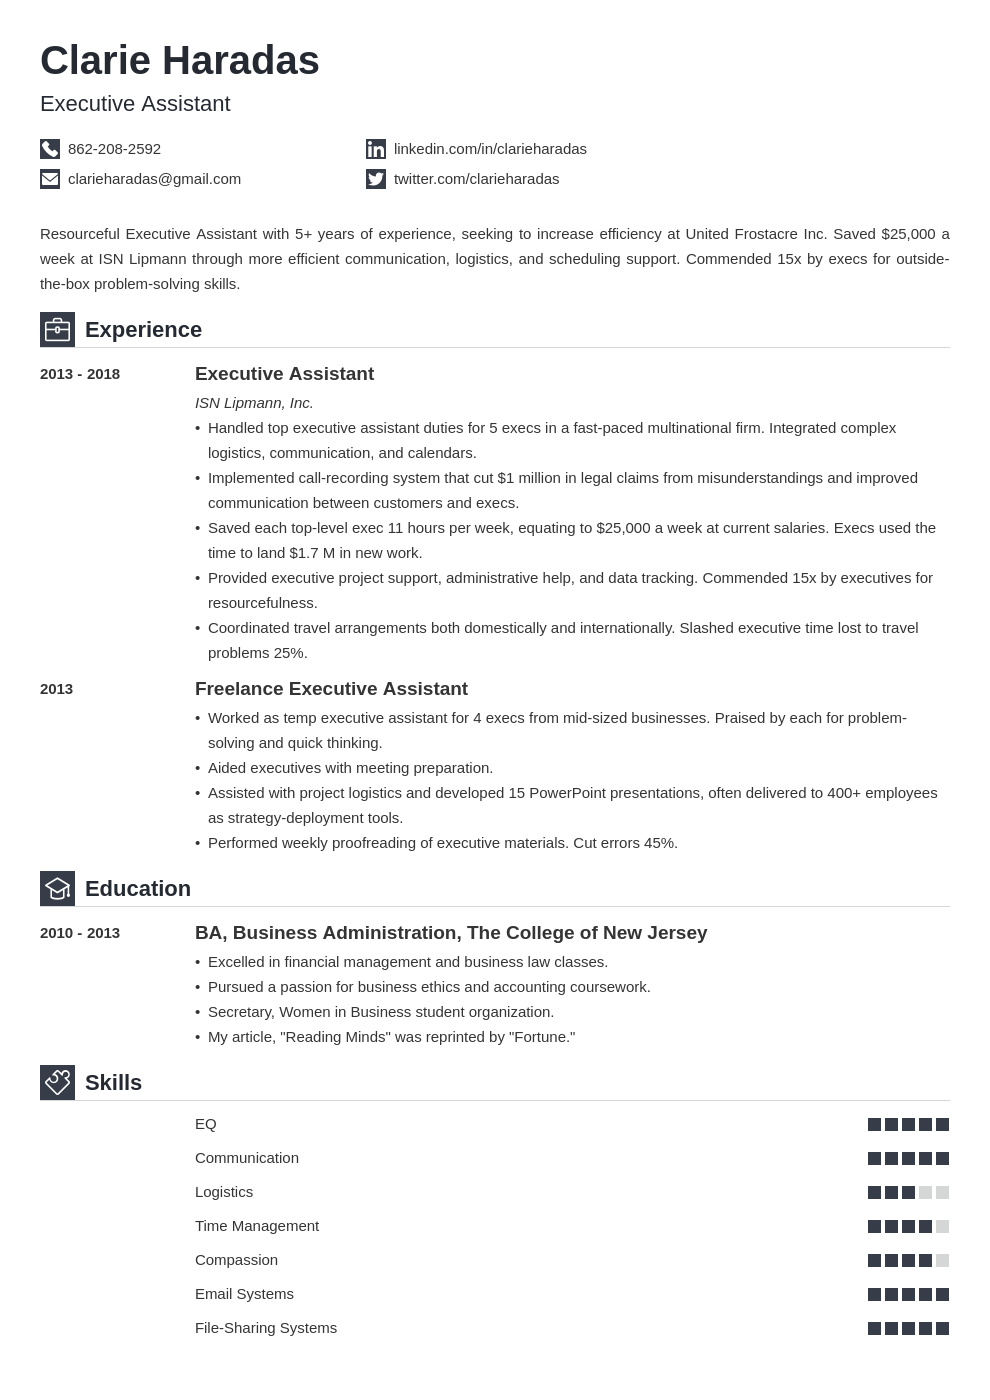 executive assistant template iconic uk